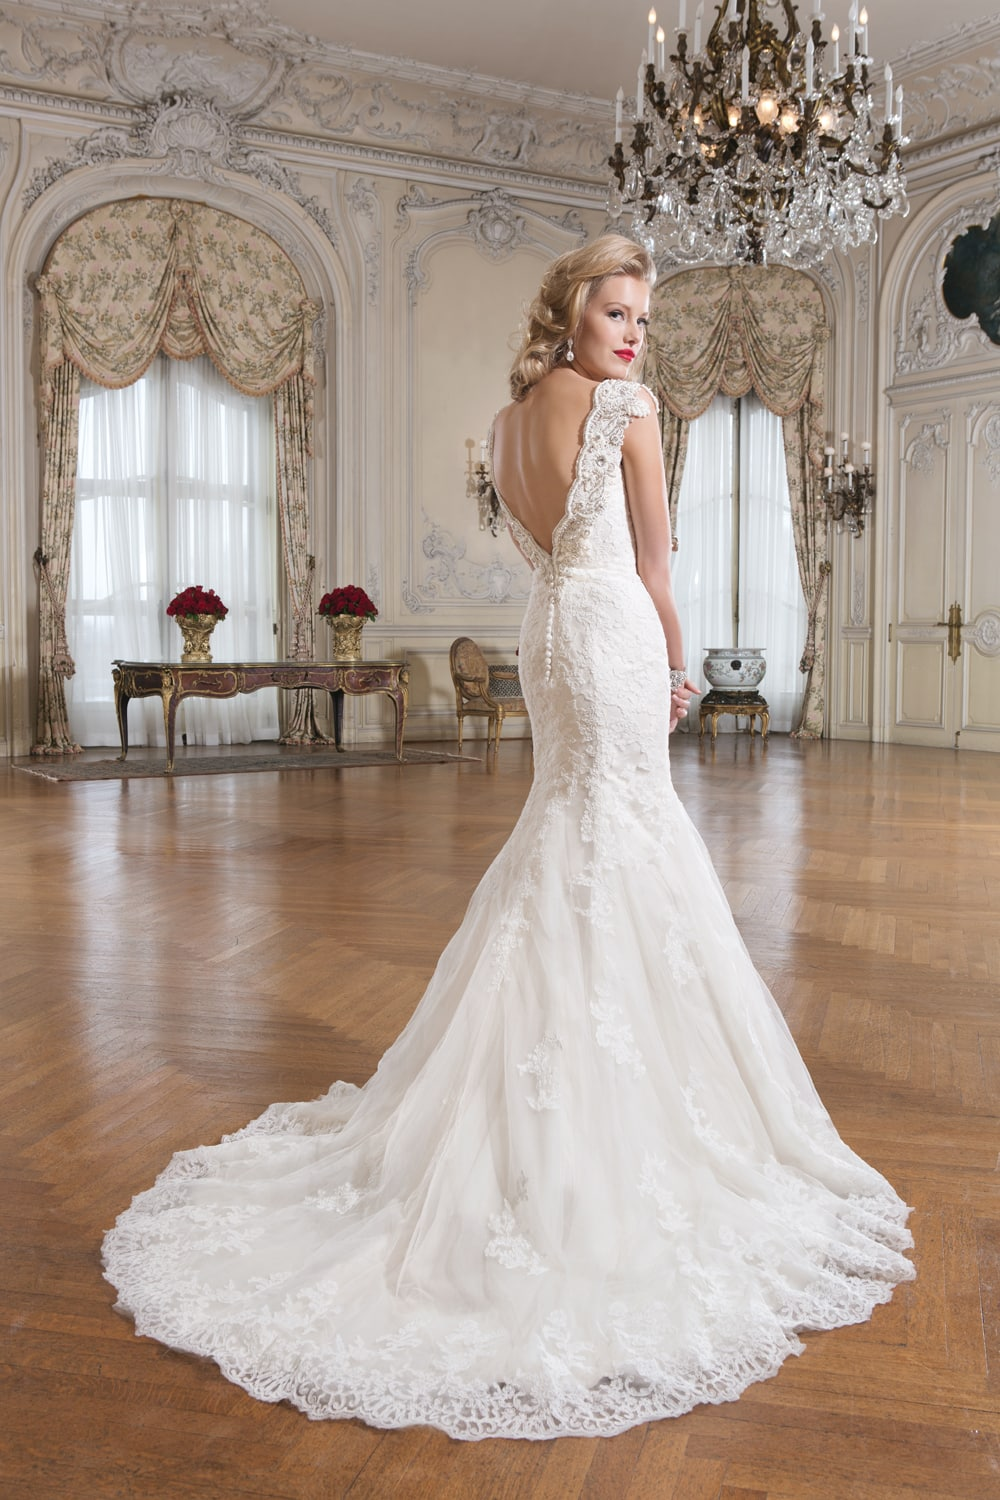 Sophisticated lace wedding dress for Lace wedding dress instagram